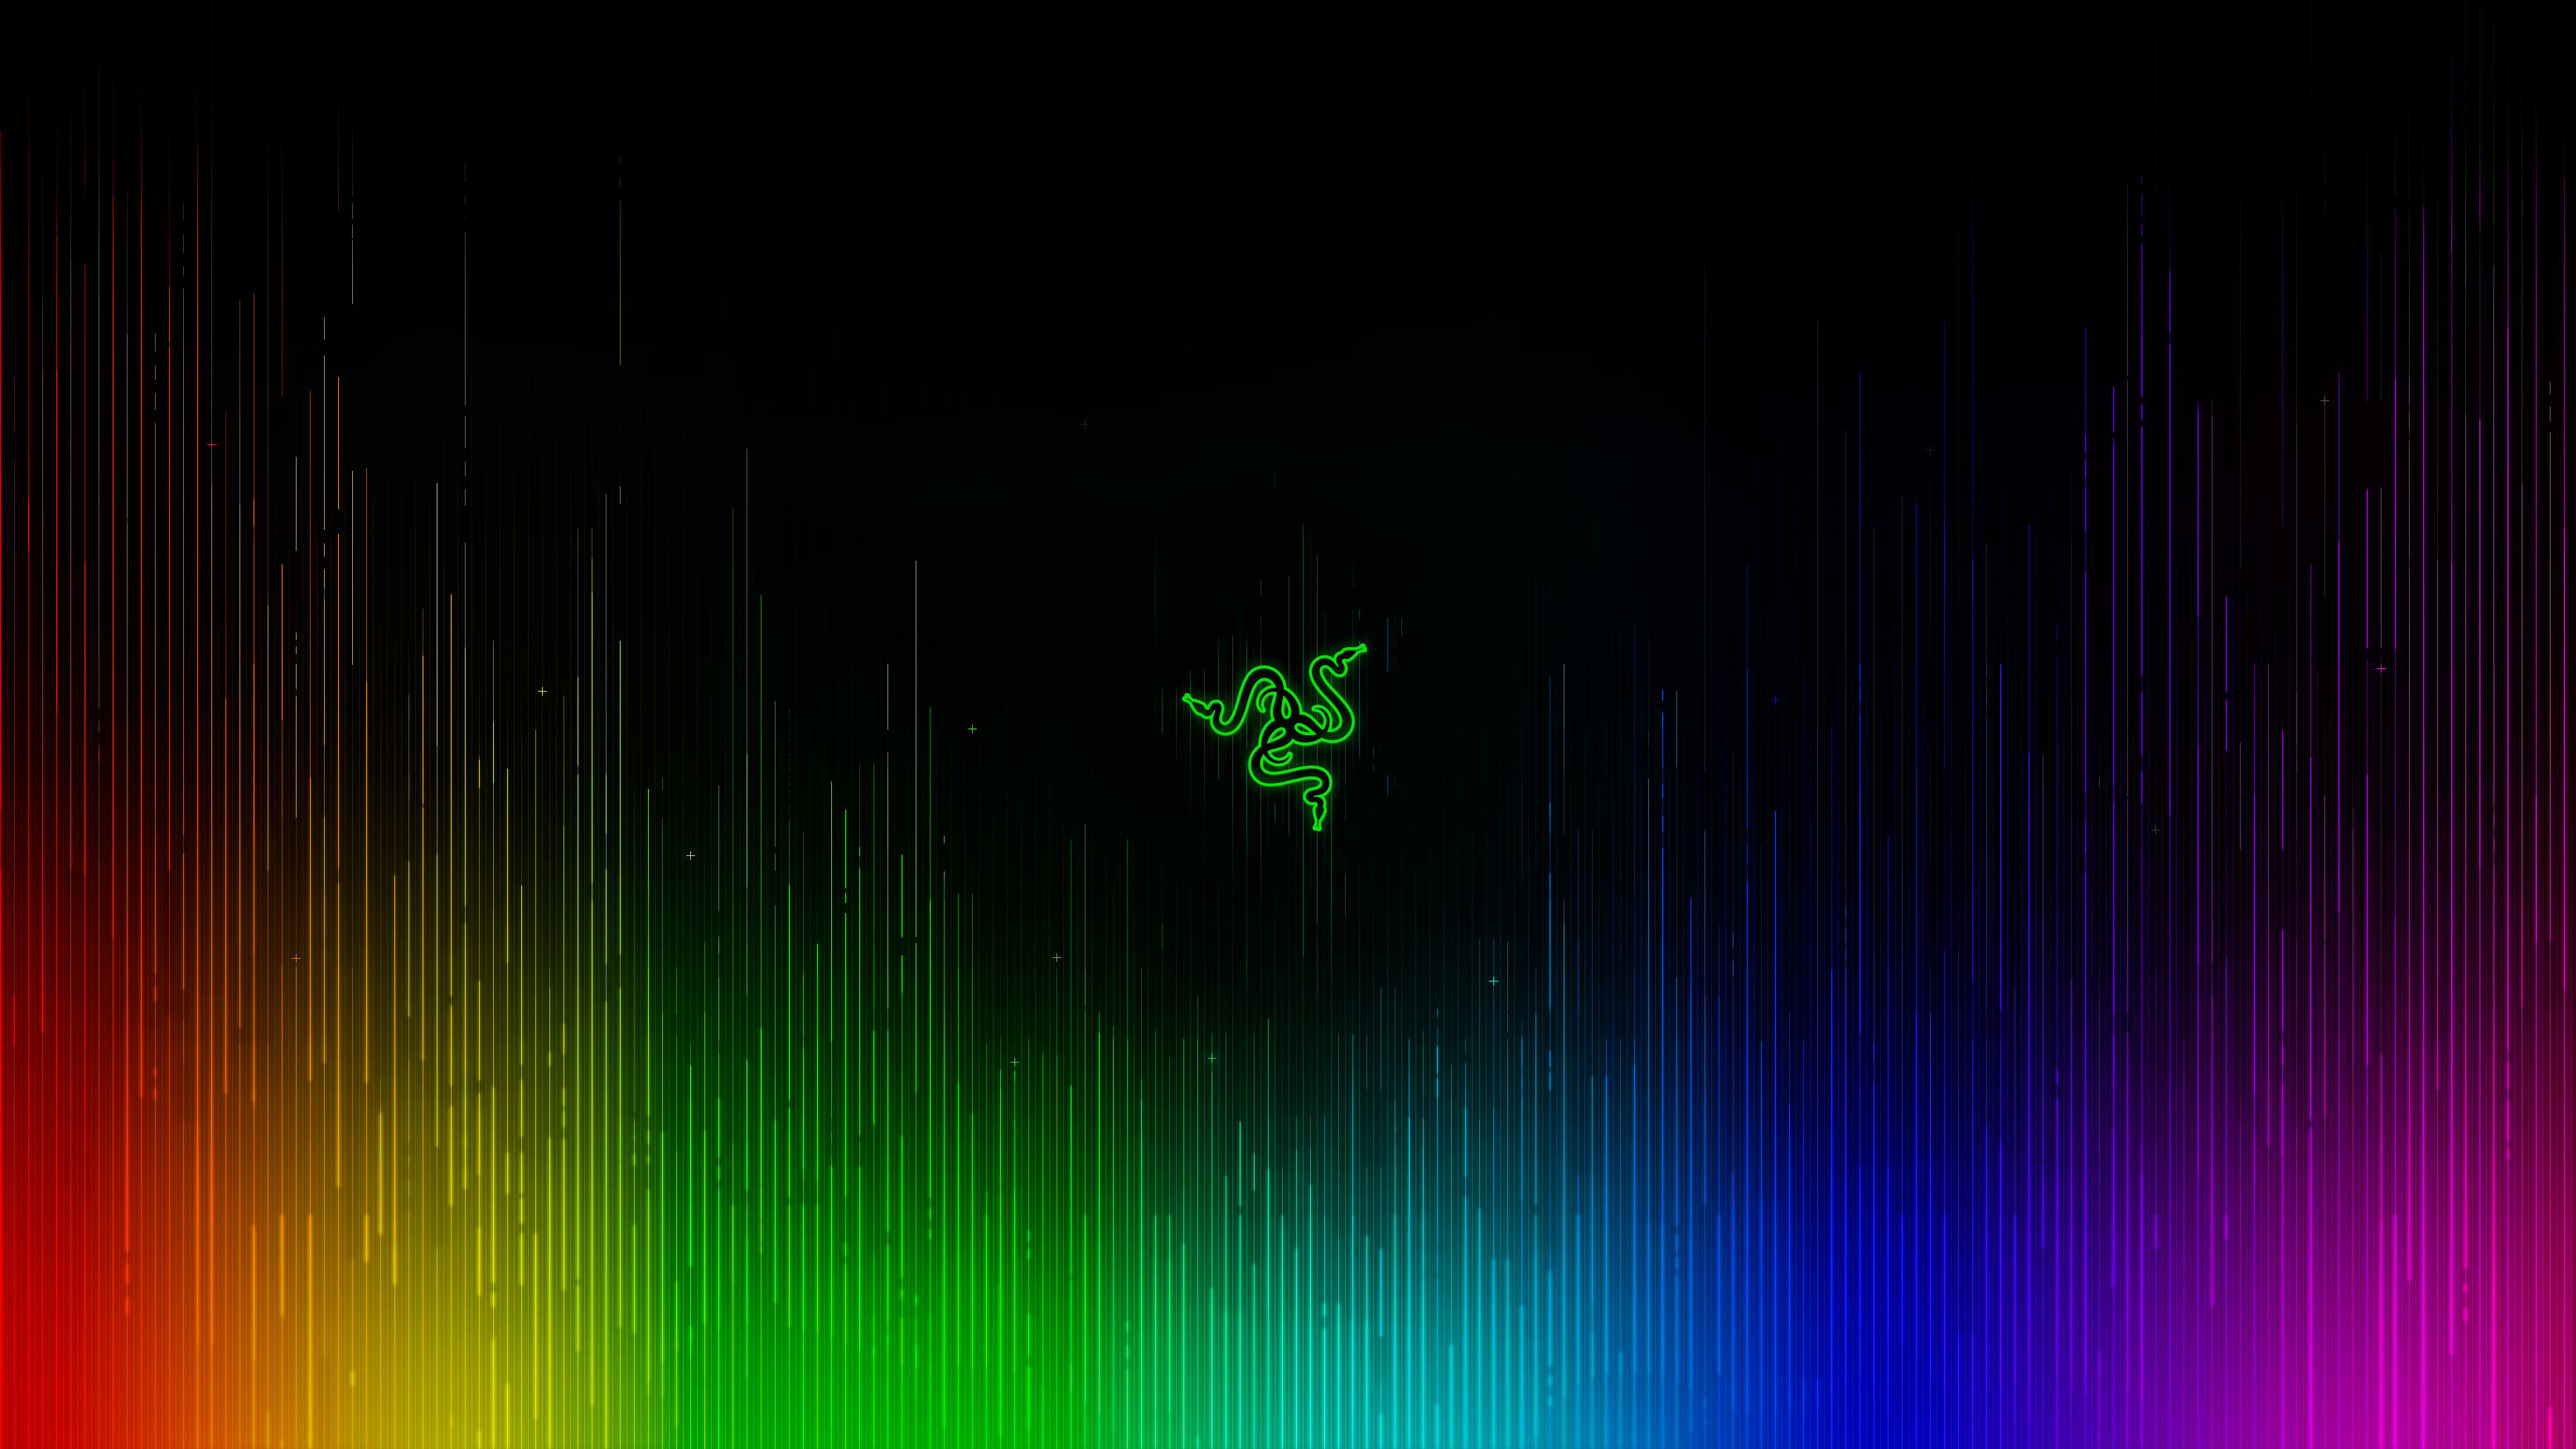 Ultra Hd Desktop Wallpapers Razer 4k Hd Computer 4k Wallpapers Images Backgrounds